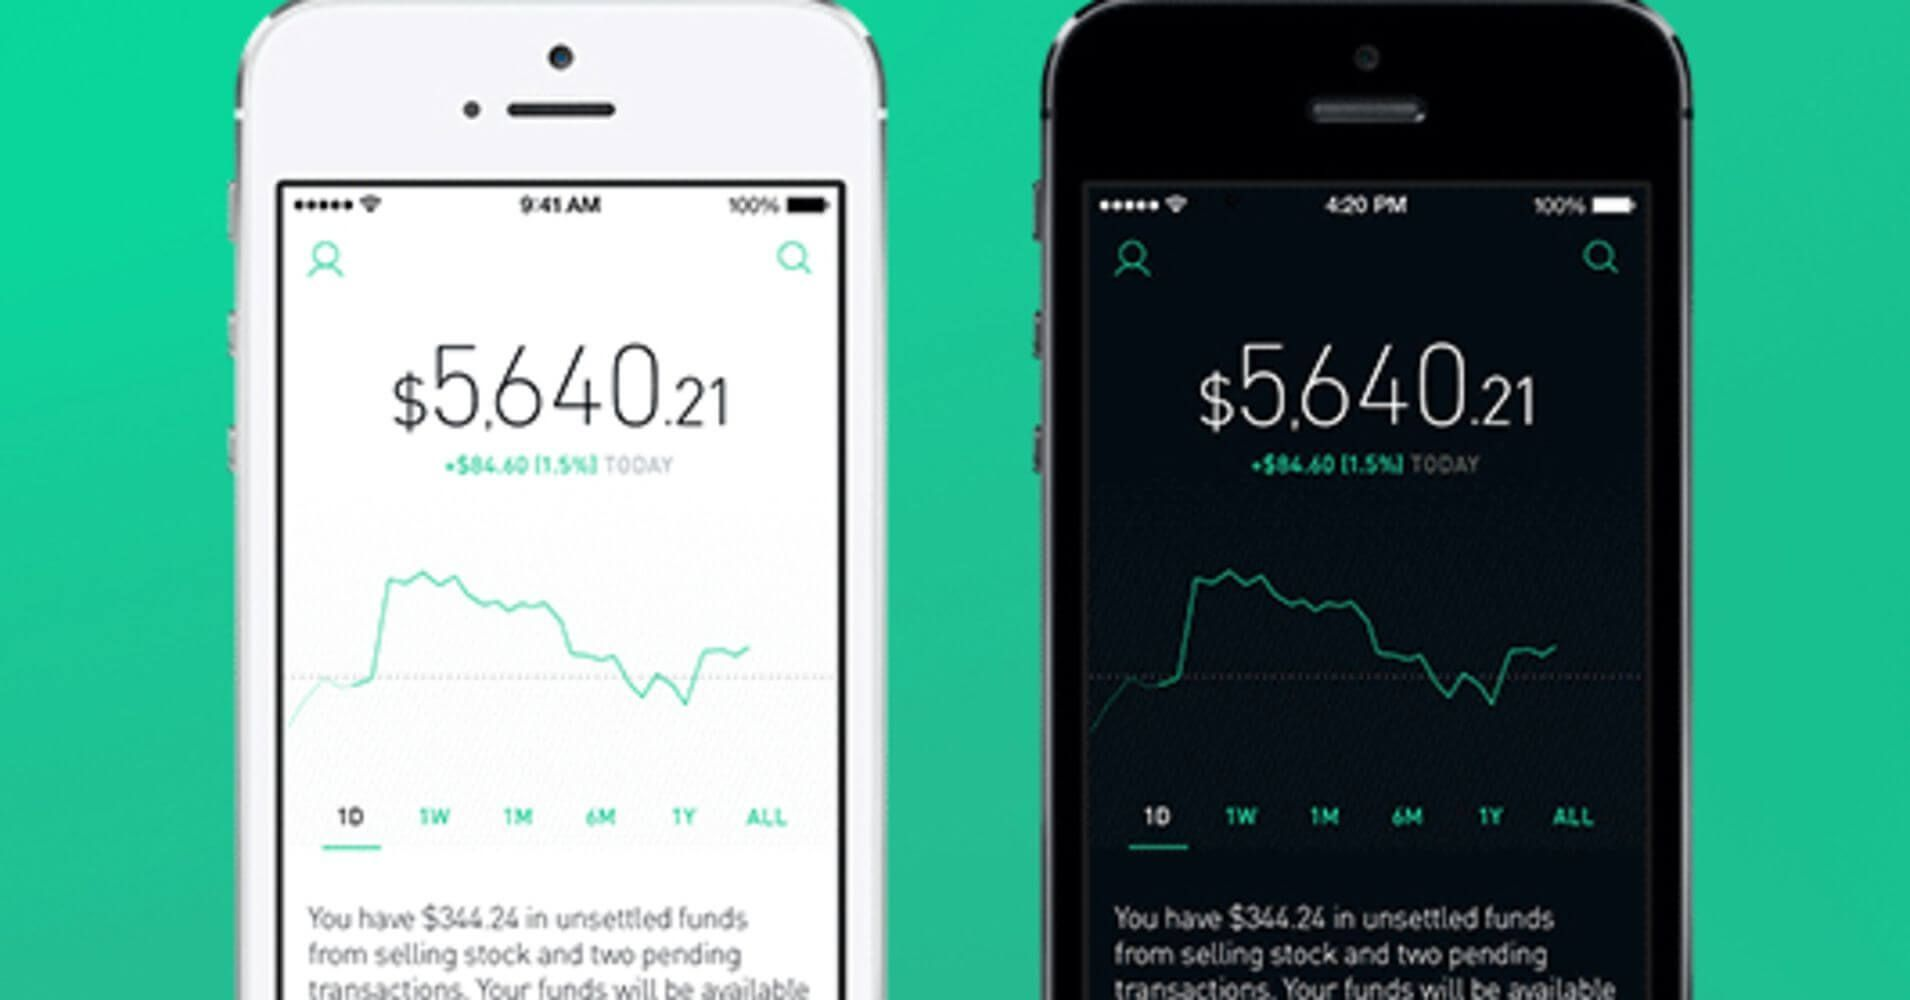 How To Transfer Money To Bank From Robinhood